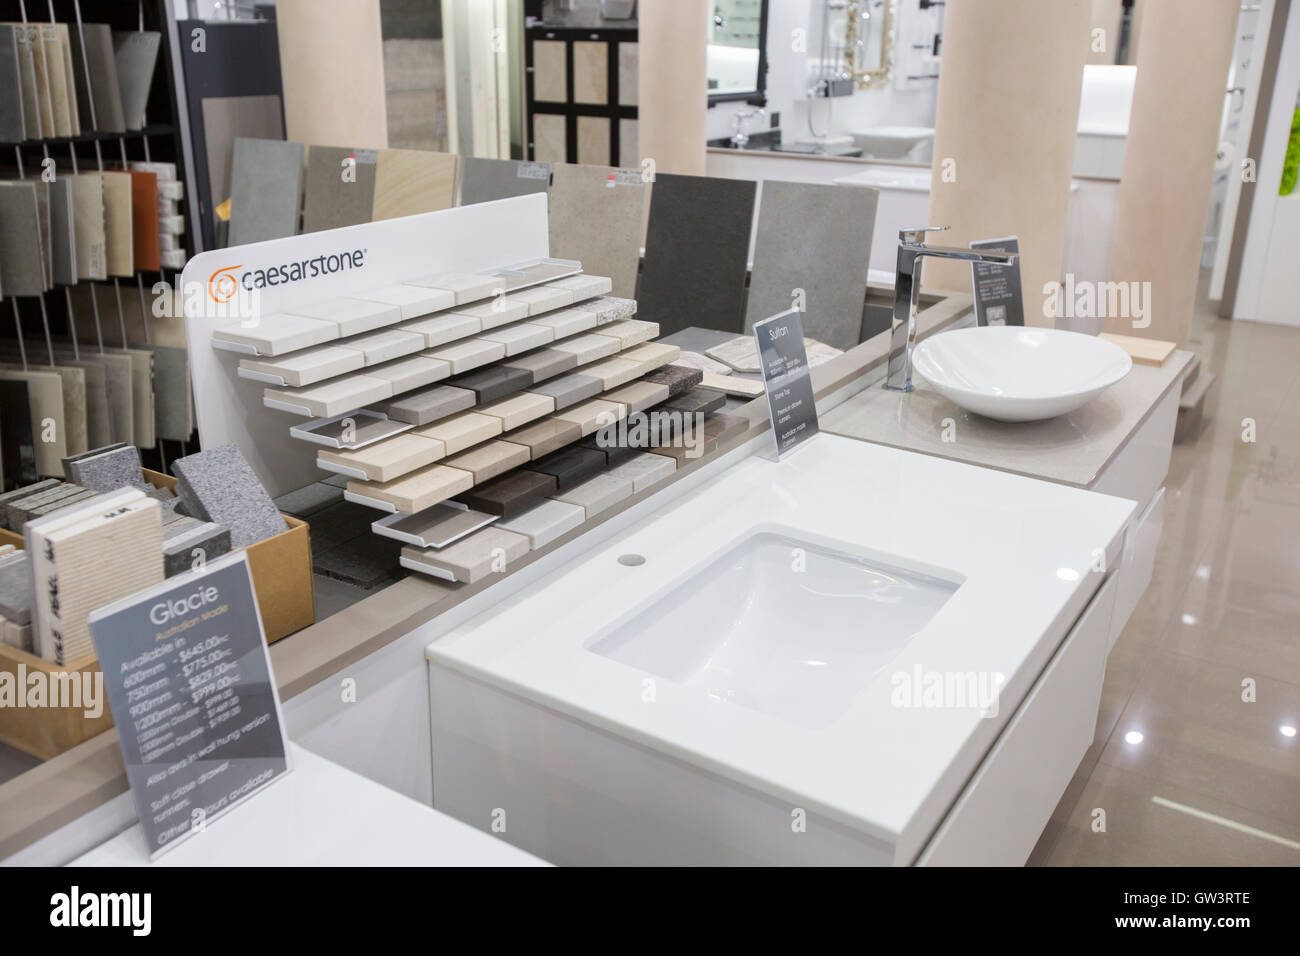 Bathroom Sanitary Ware Showroom Retailer Stock Photos & Bathroom ...